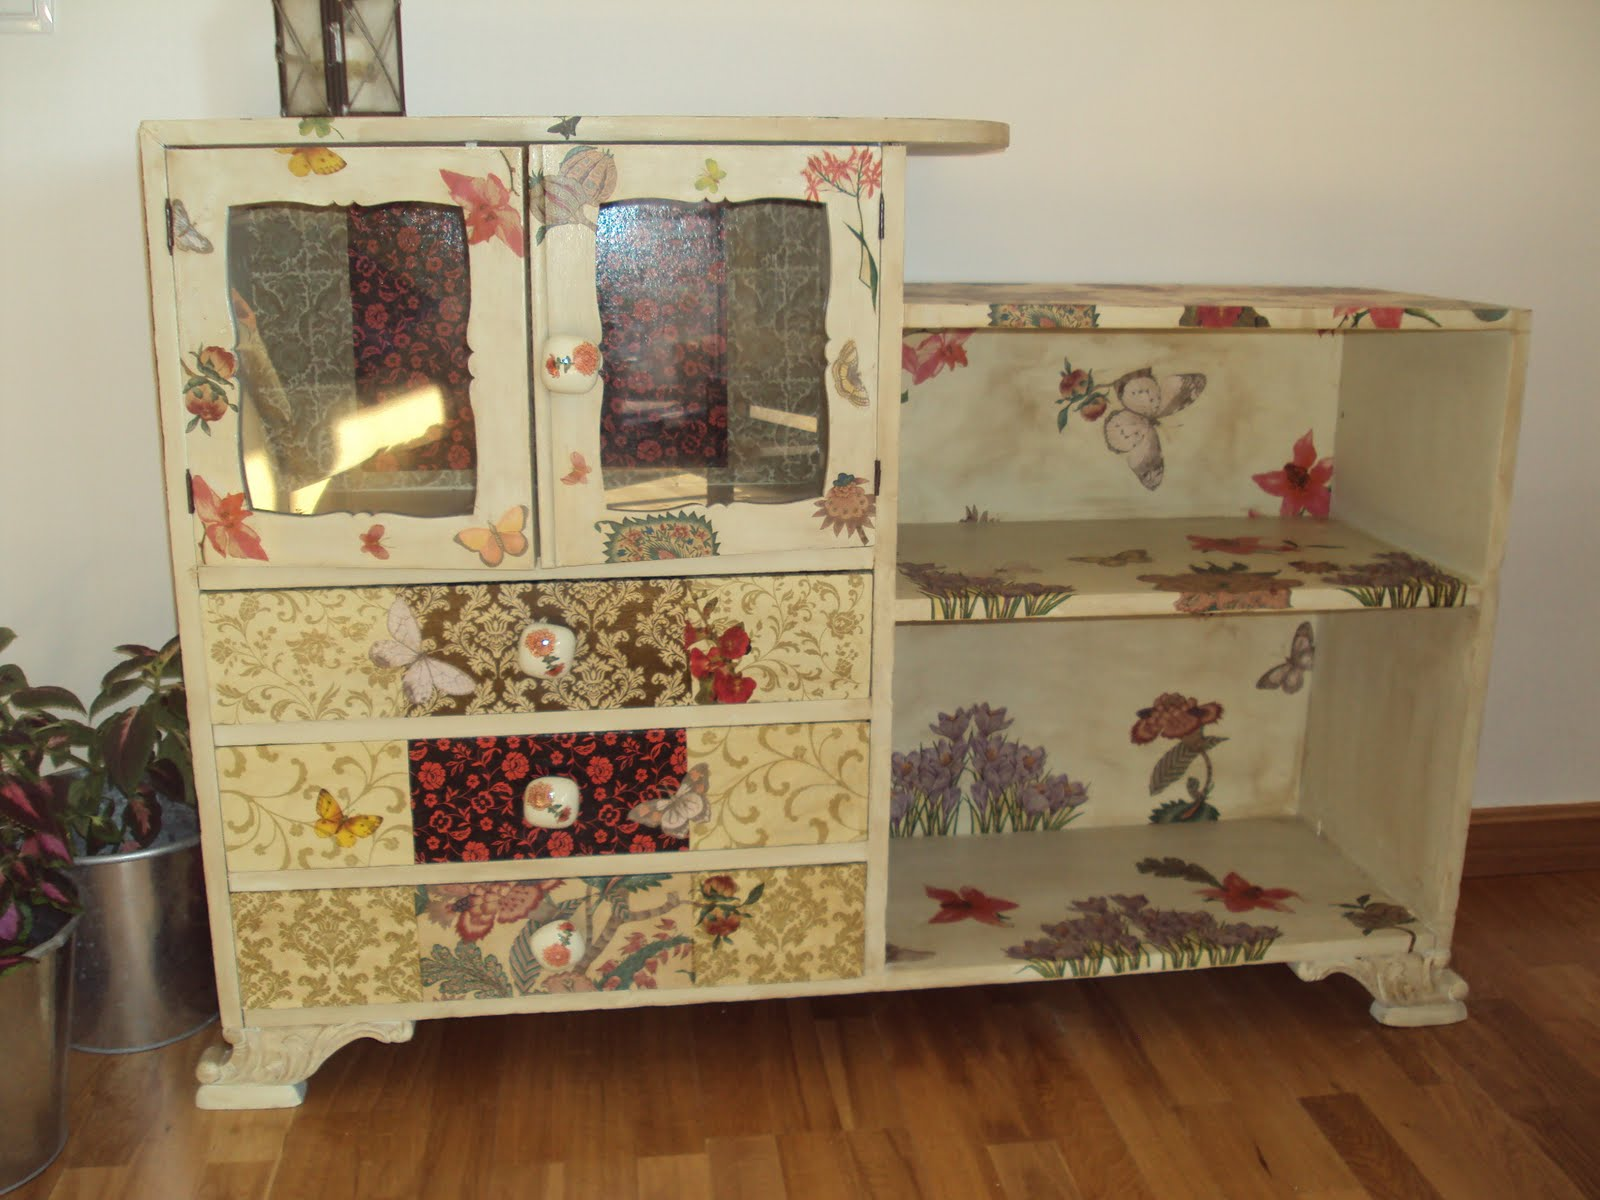 Decoupage Mueble Decorocomoloko Mueble Decoupage